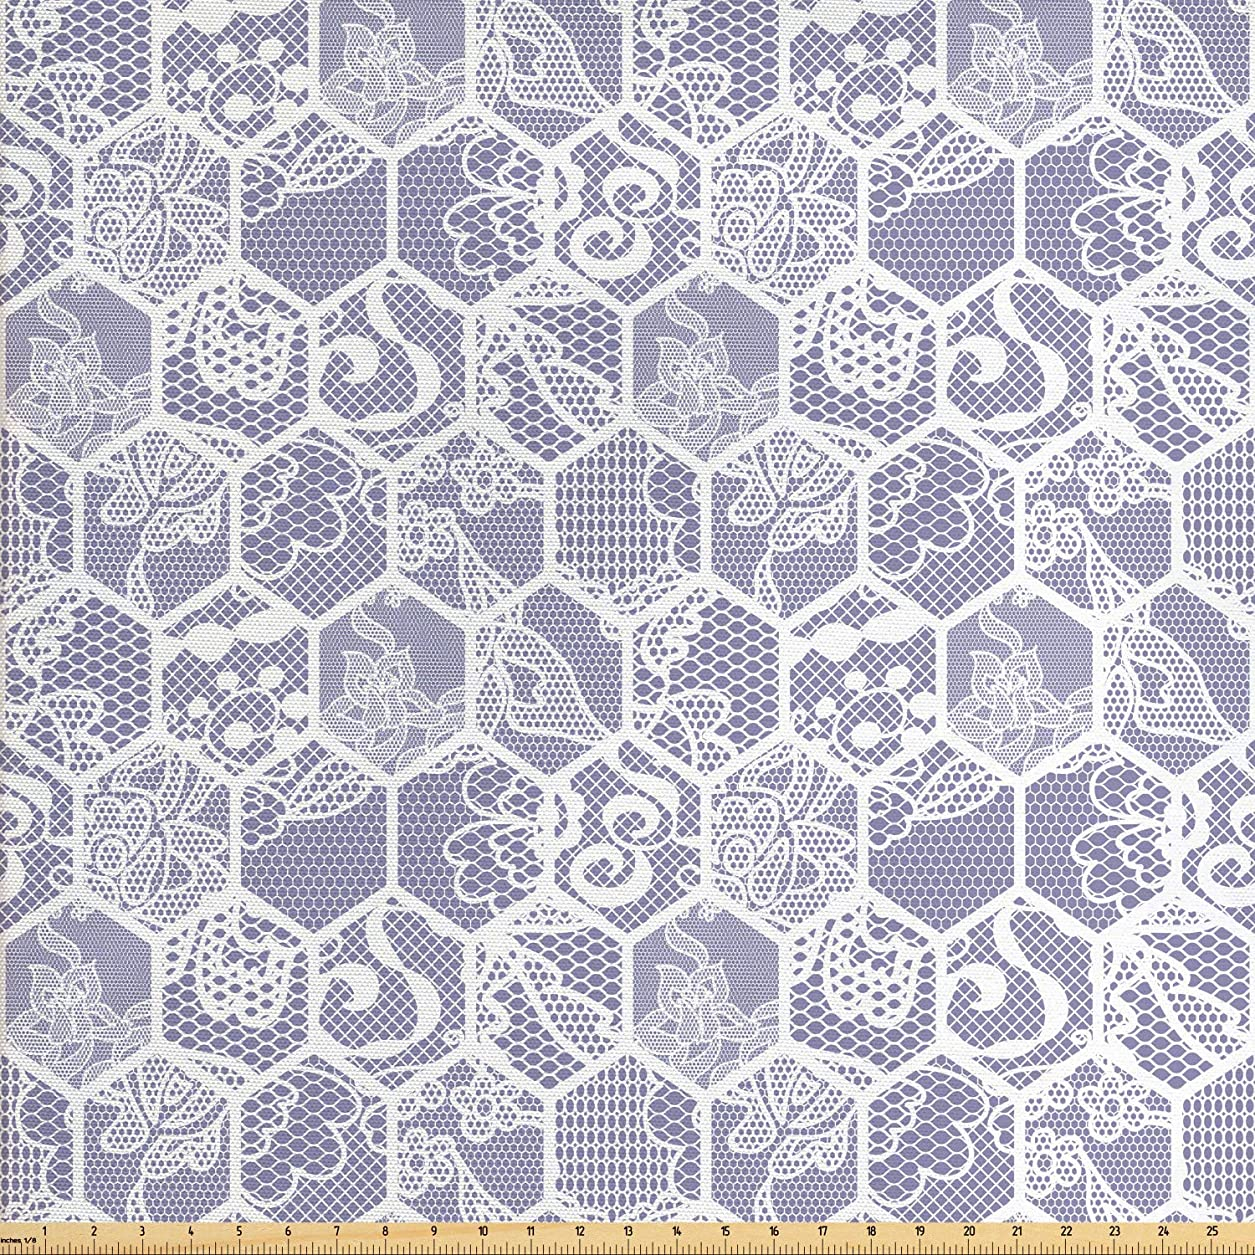 Lunarable Mauve and White Fabric by The Yard, Honeycomb Mesh Pattern with Lace Style Floral Antique Ornaments Print, Decorative Fabric for Upholstery and Home Accents, 1 Yard, Mauve White ewi17327522